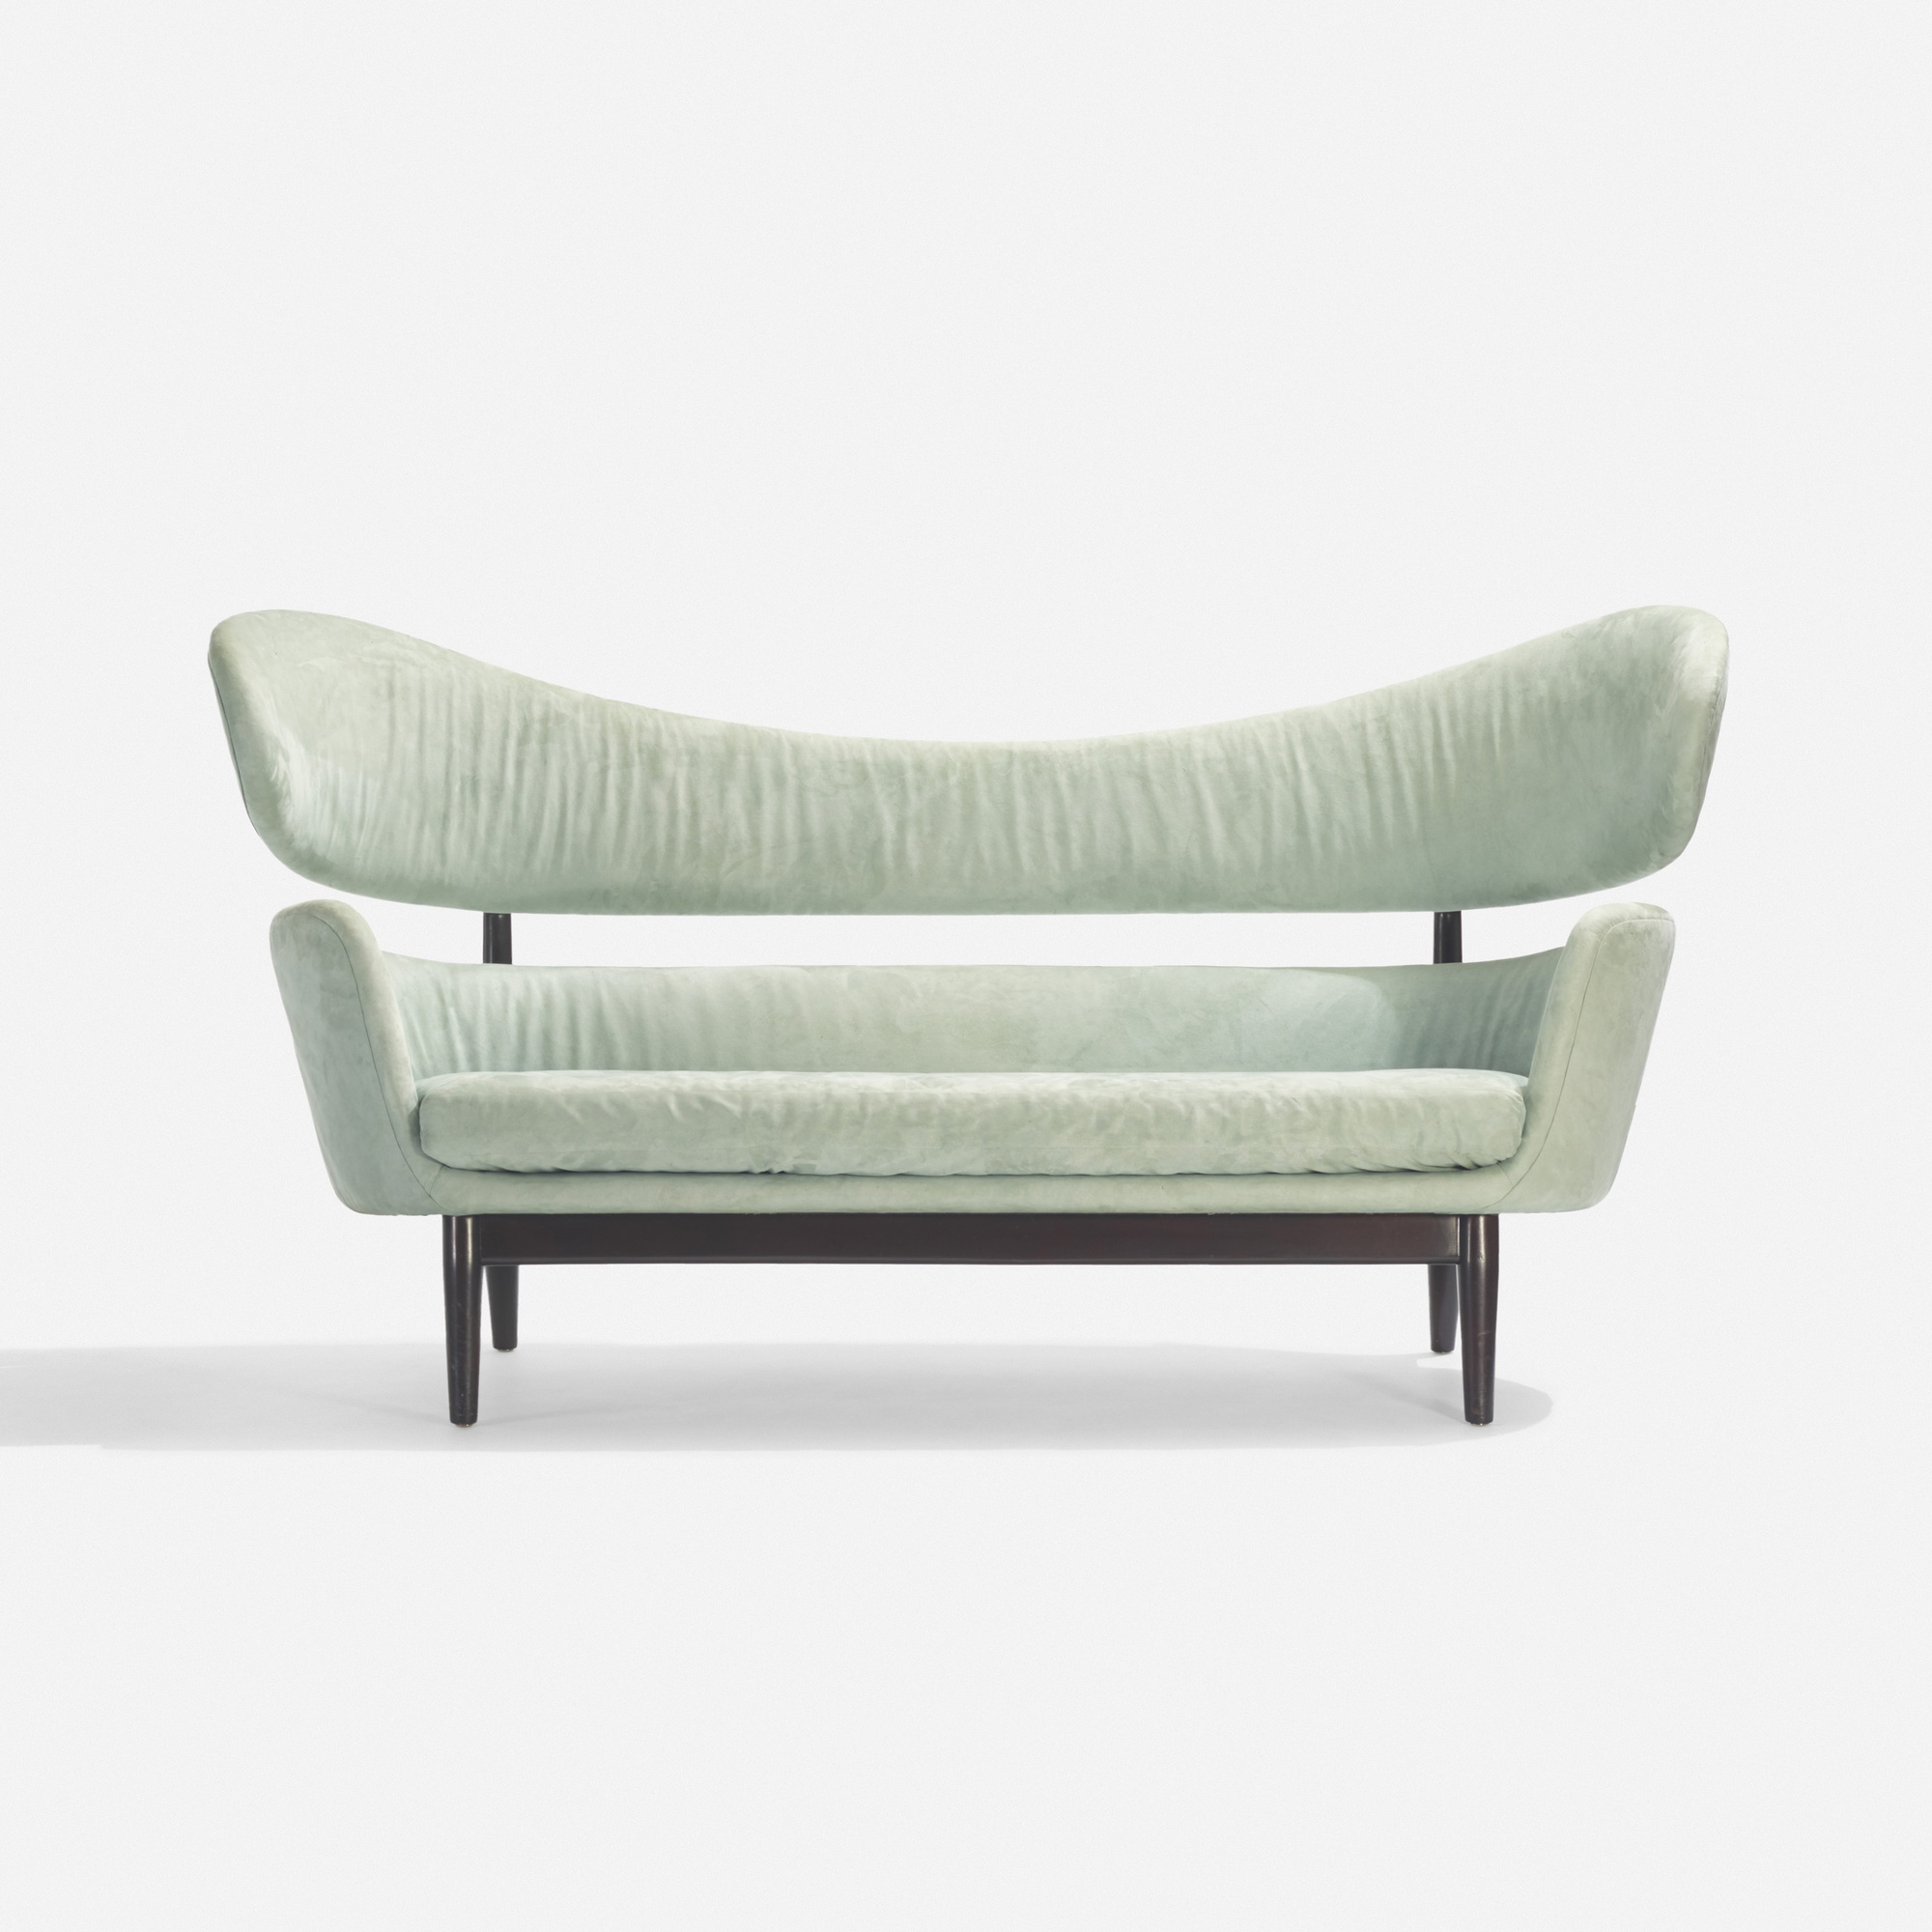 134: Finn Juhl / rare sofa (1 of 5)